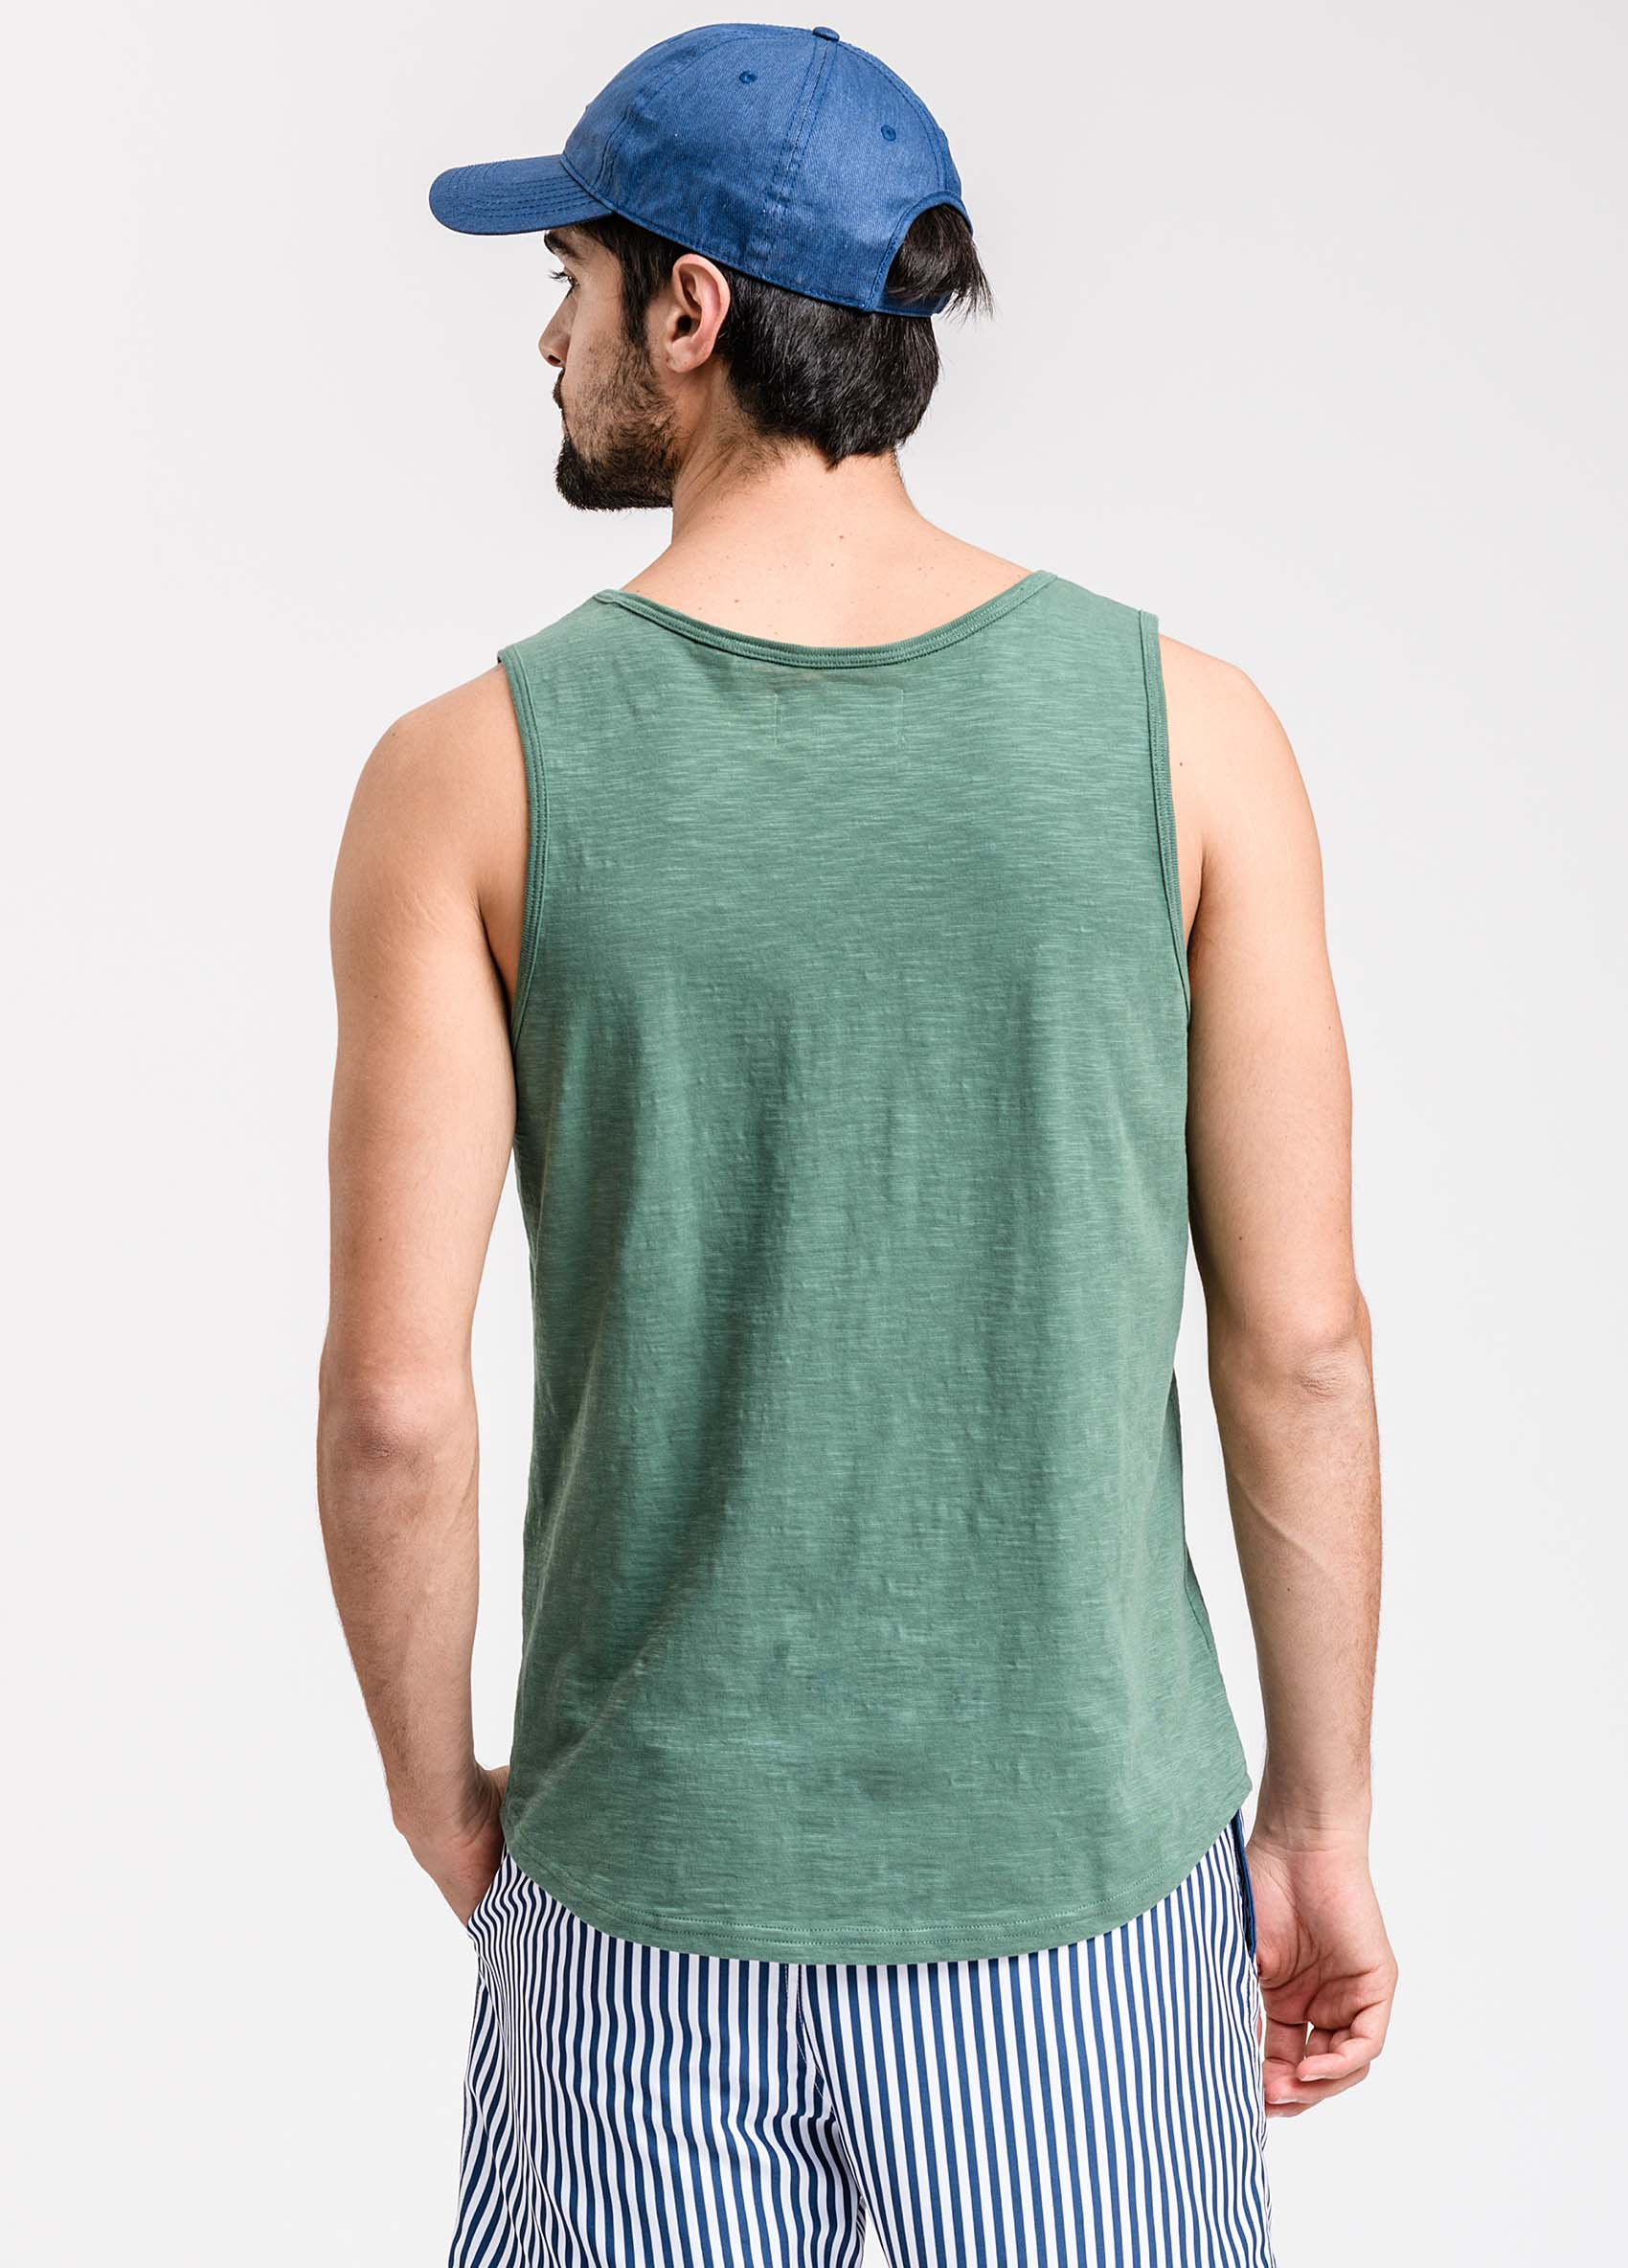 penguin_musculosa-flame-washed-tank_37-27-2020__picture-1911